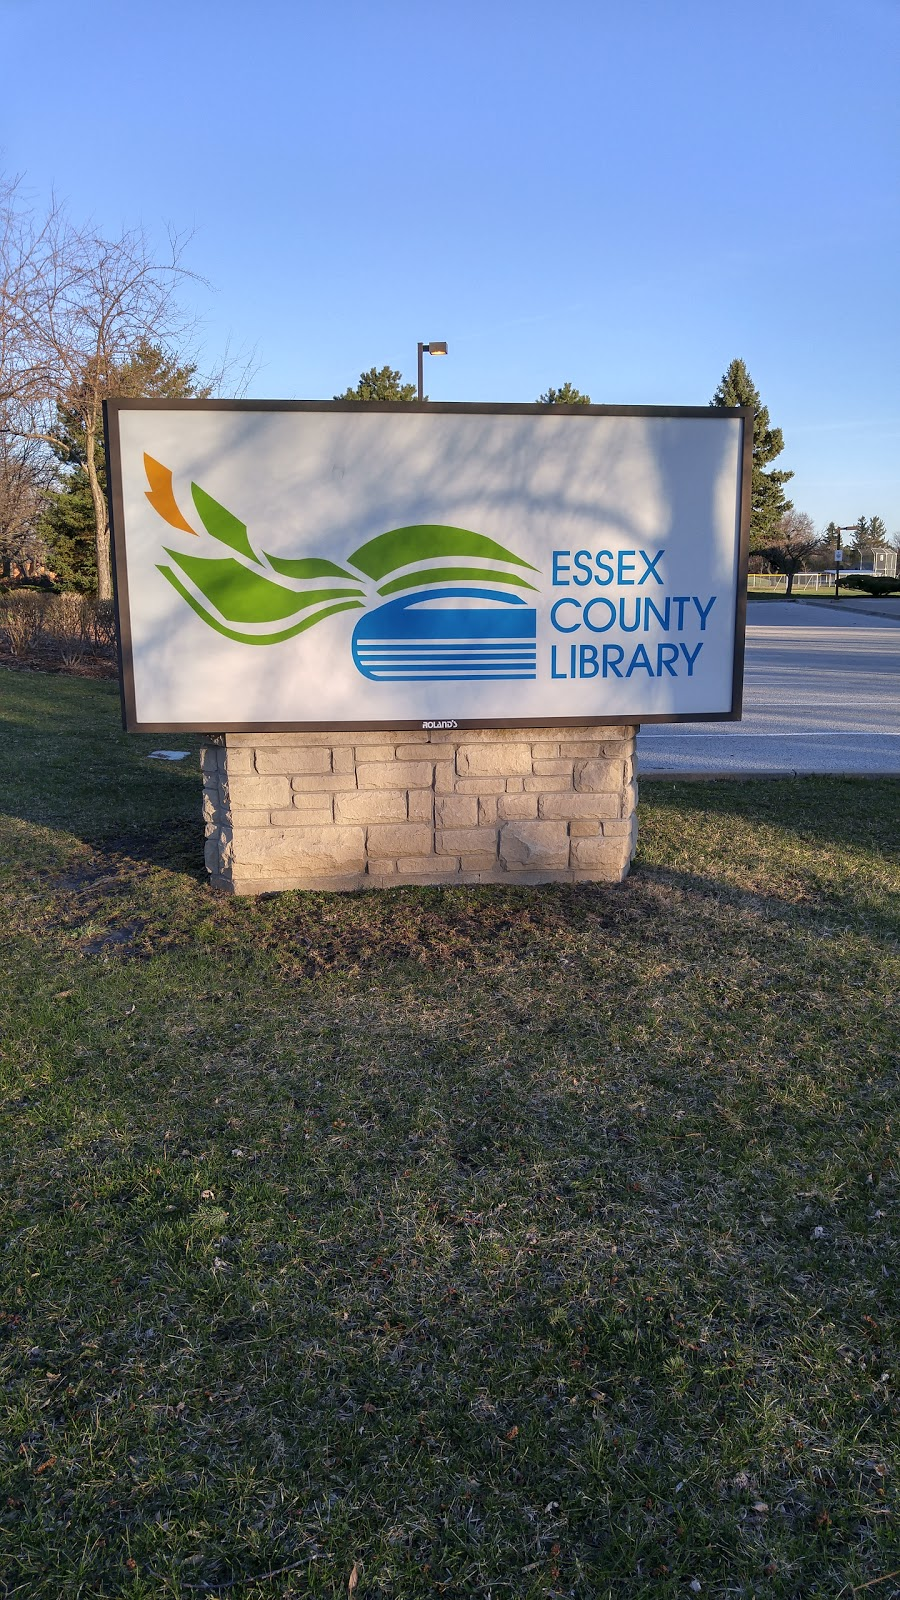 Essex County Library - Tecumseh Branch   library   13675 St Gregorys Rd, Windsor, ON N8N 3E4, Canada   2269461529230 OR +1 226-946-1529 ext. 230